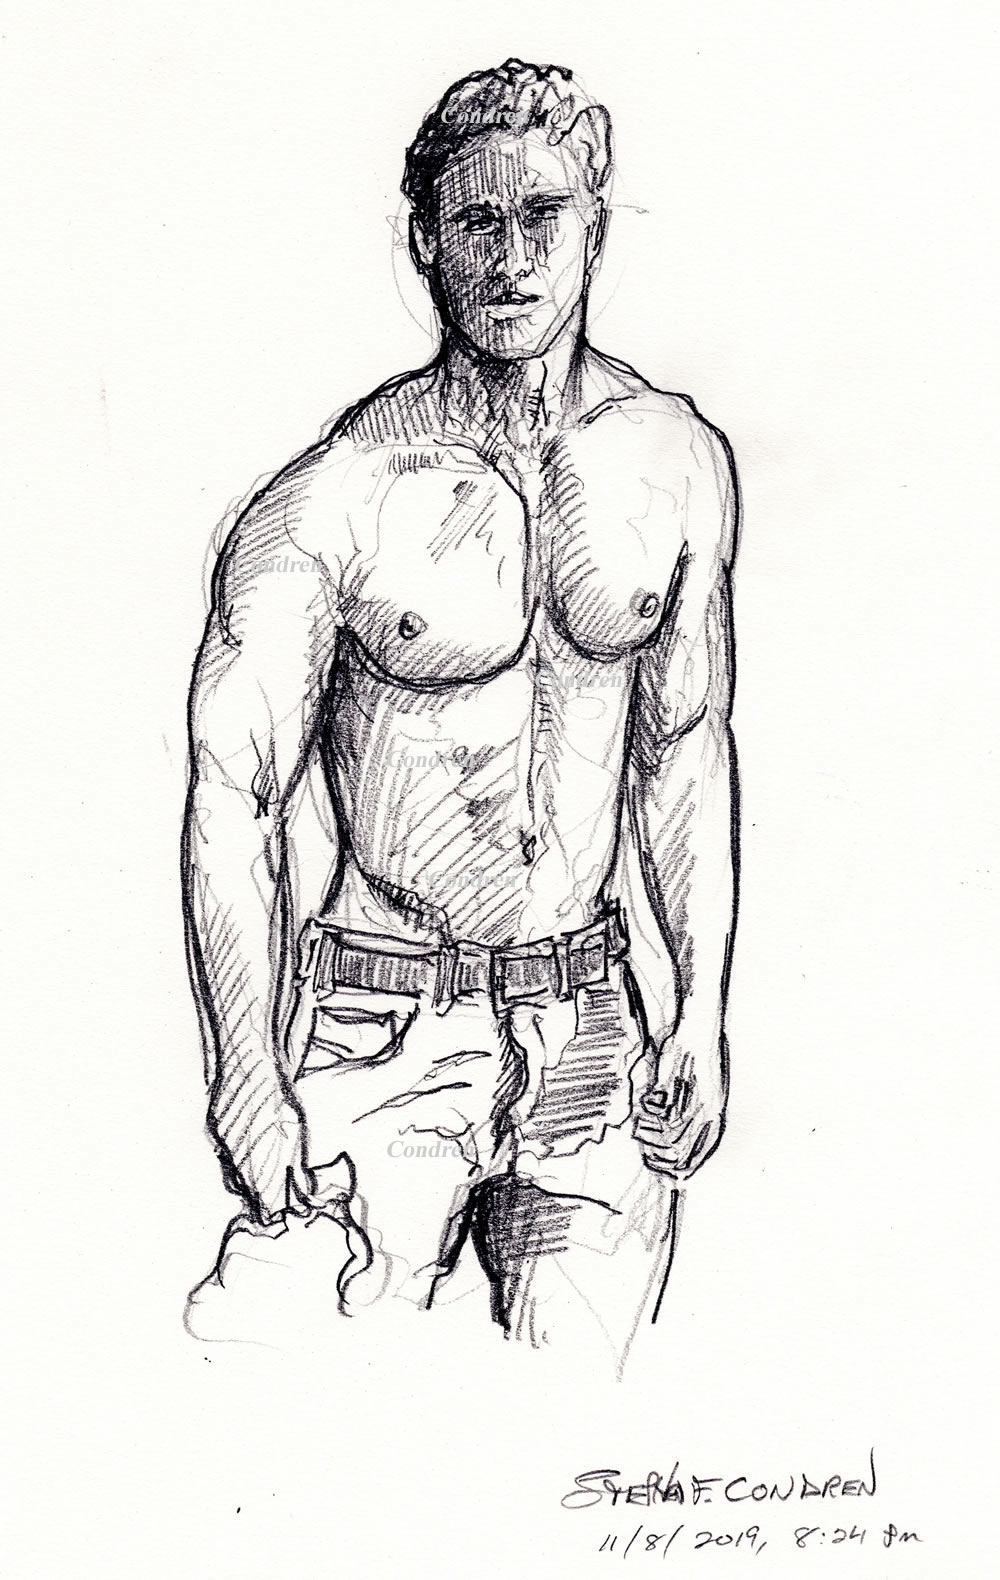 Shirtless gay cowboy #330Z or bare-chested LGBTQ herdsman, pencil figure drawing or stylus body sketch, by artist Stephen F. Condren, with prints, and scans.